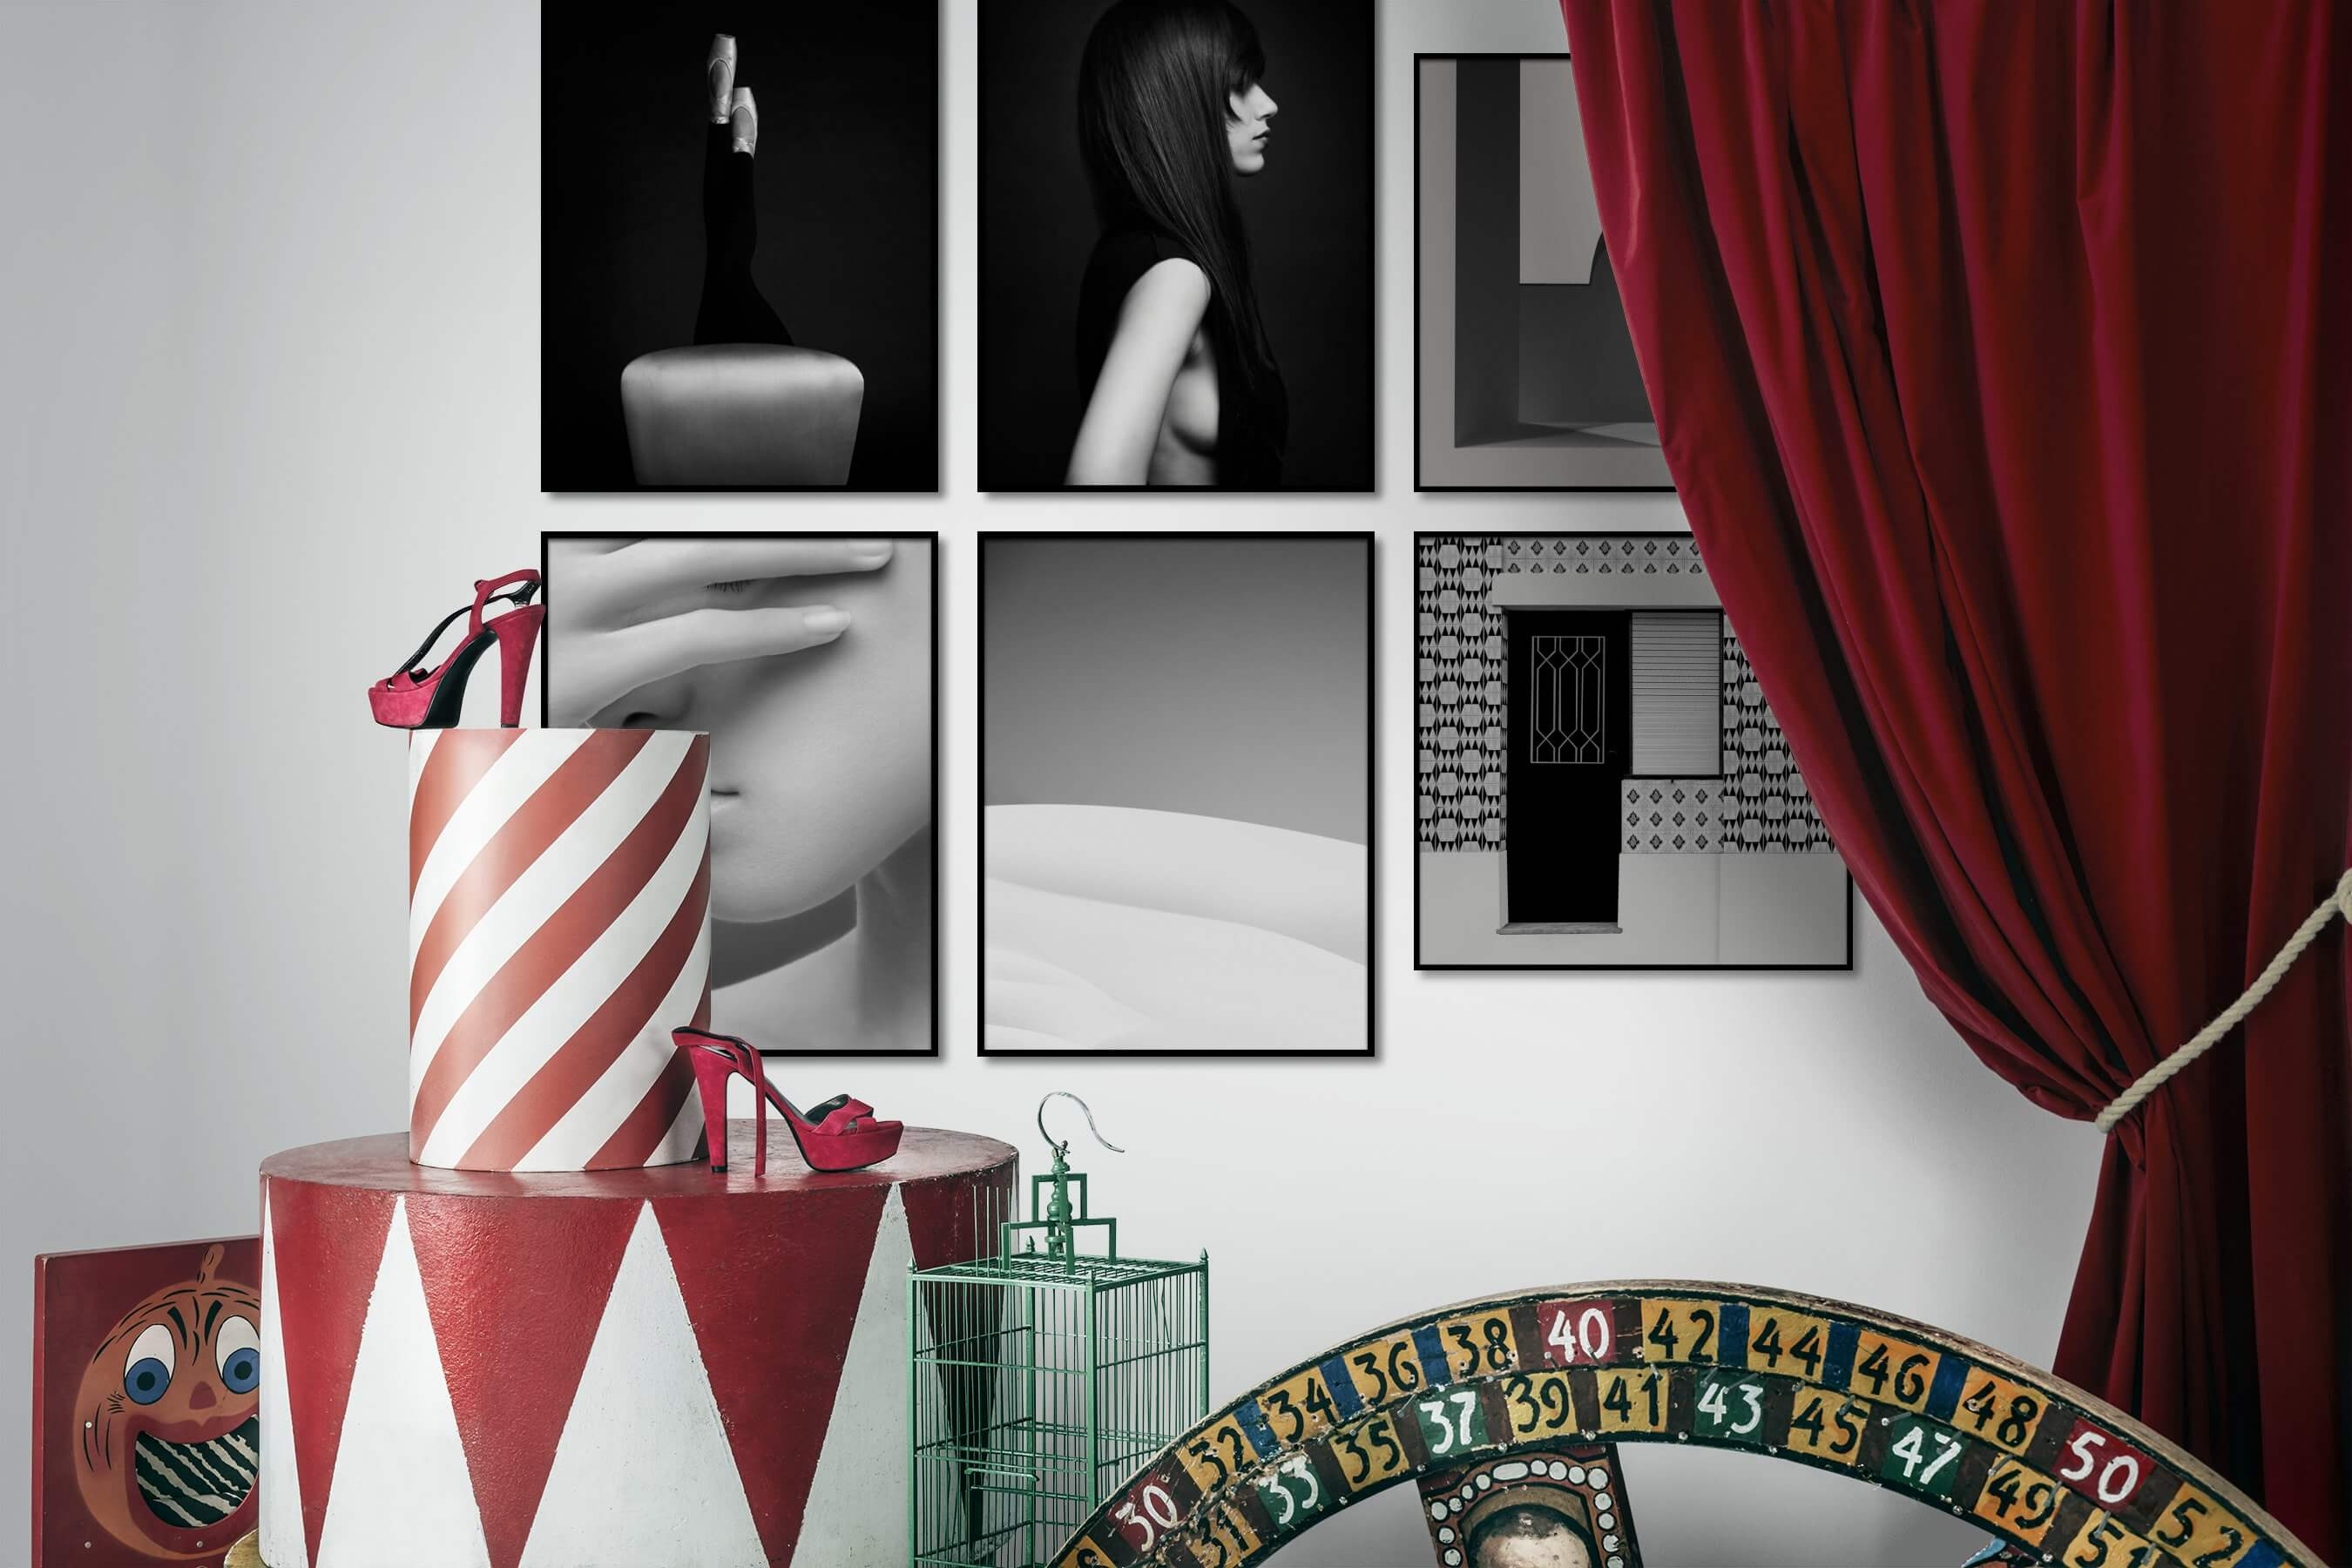 Gallery wall idea with six framed pictures arranged on a wall depicting Fashion & Beauty, Black & White, Dark Tones, For the Minimalist, For the Moderate, Nature, and For the Maximalist